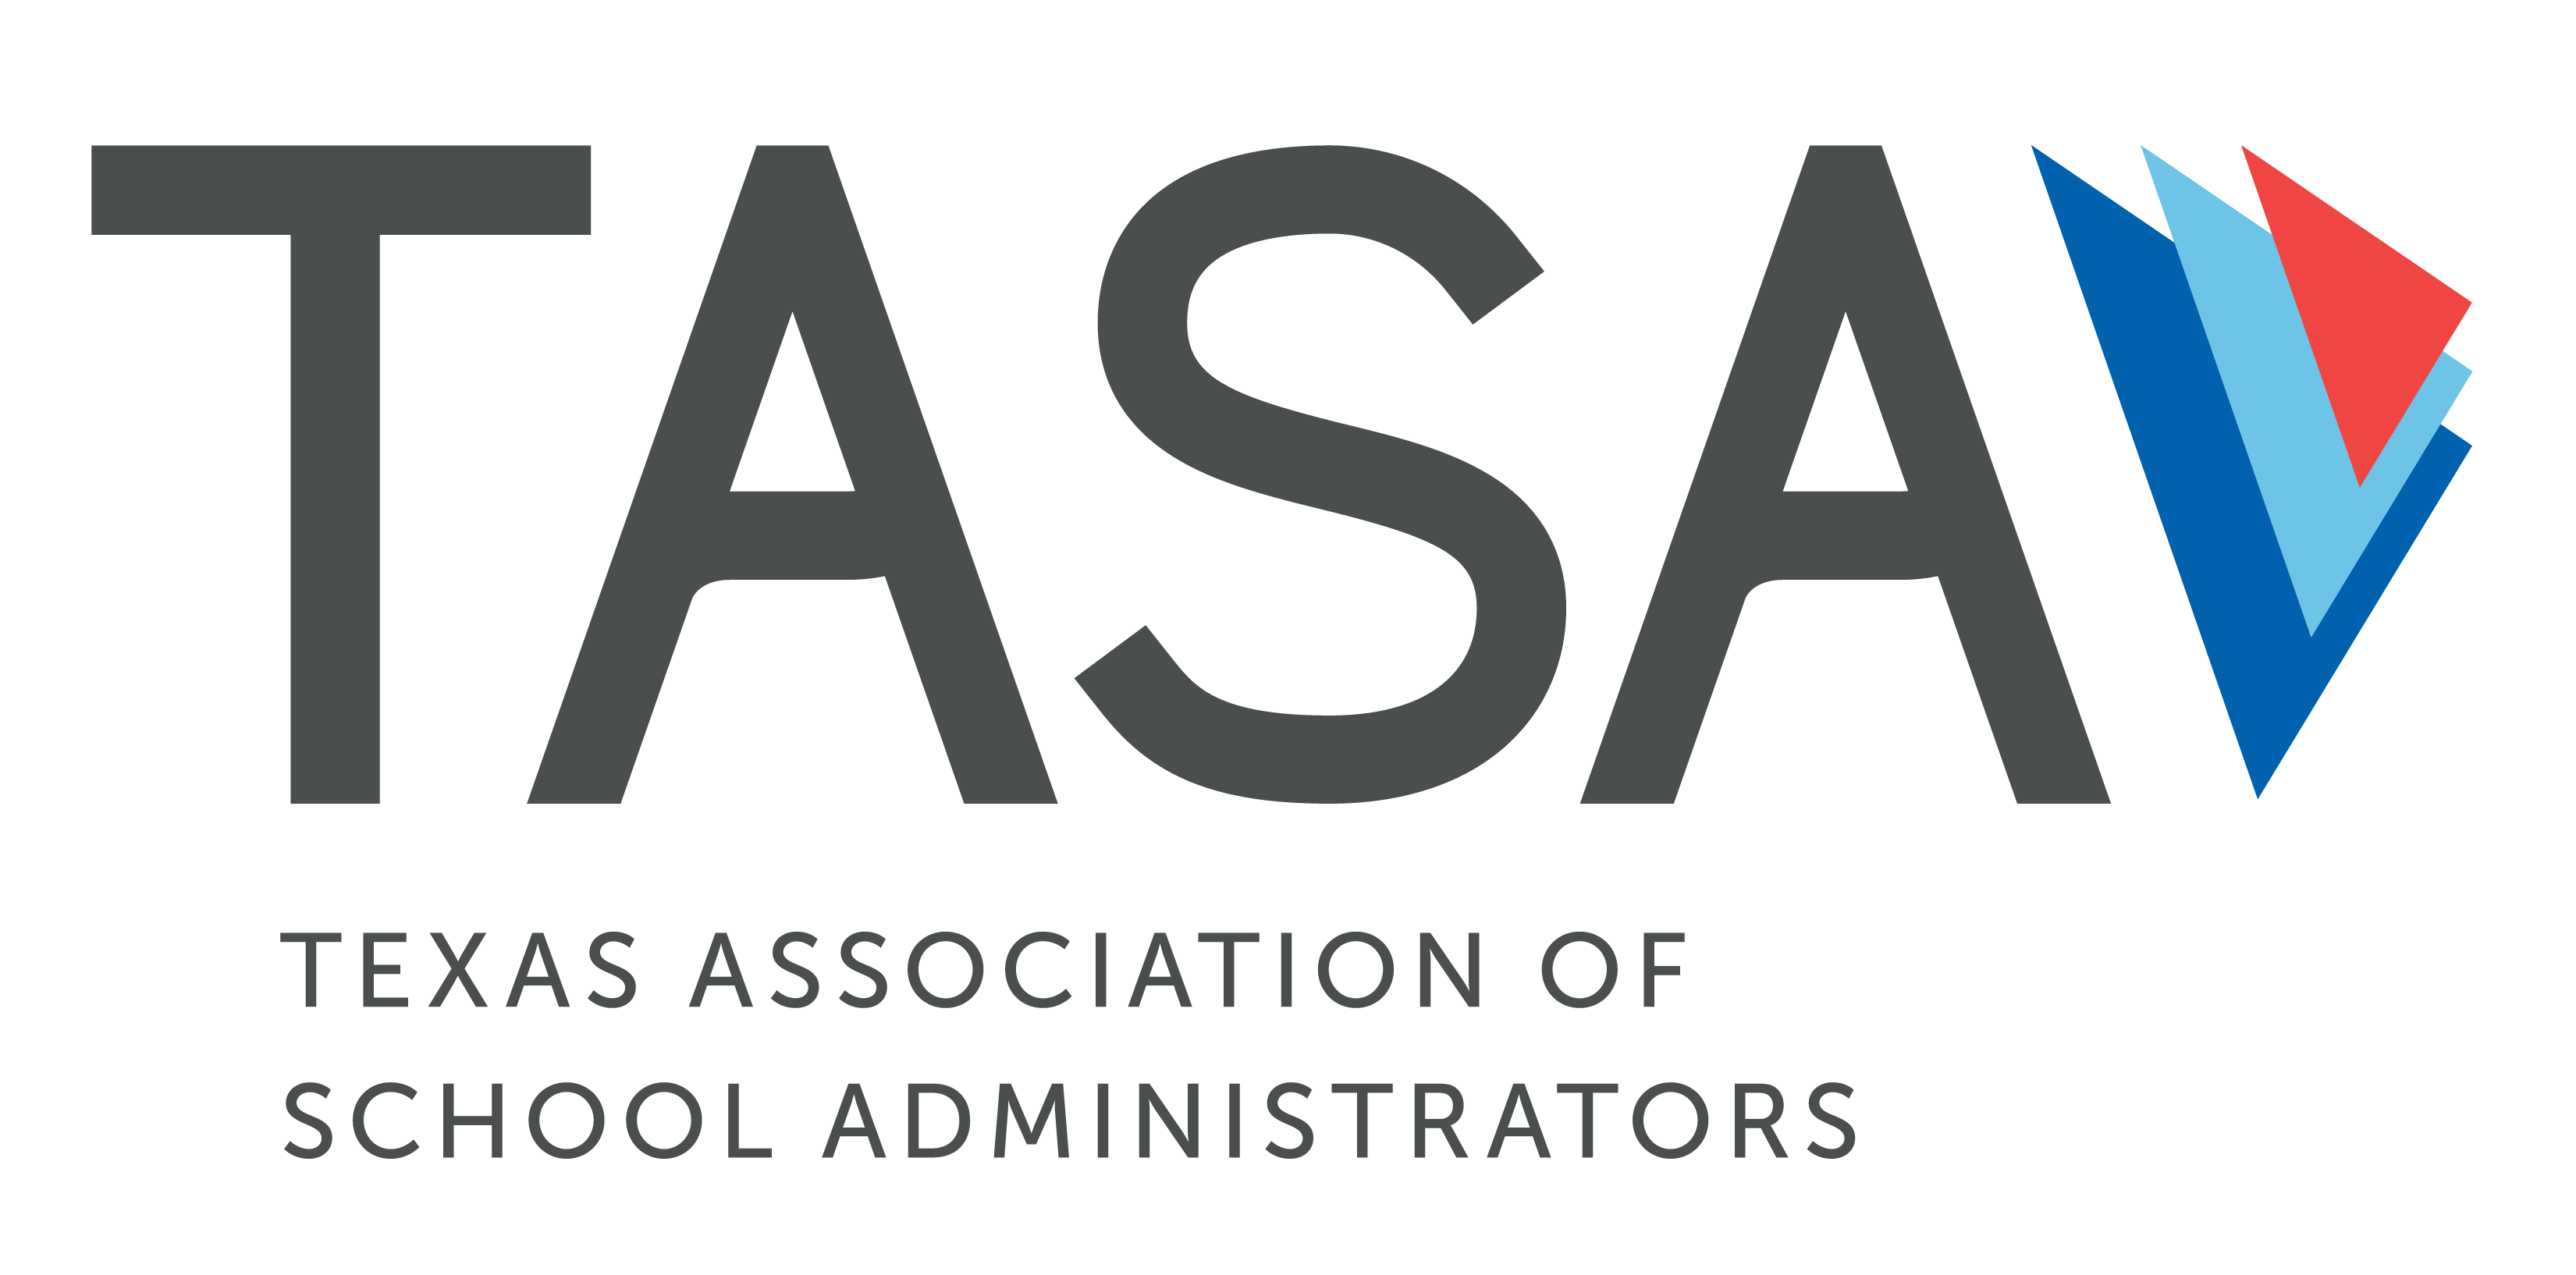 Texas Association of School Administrators